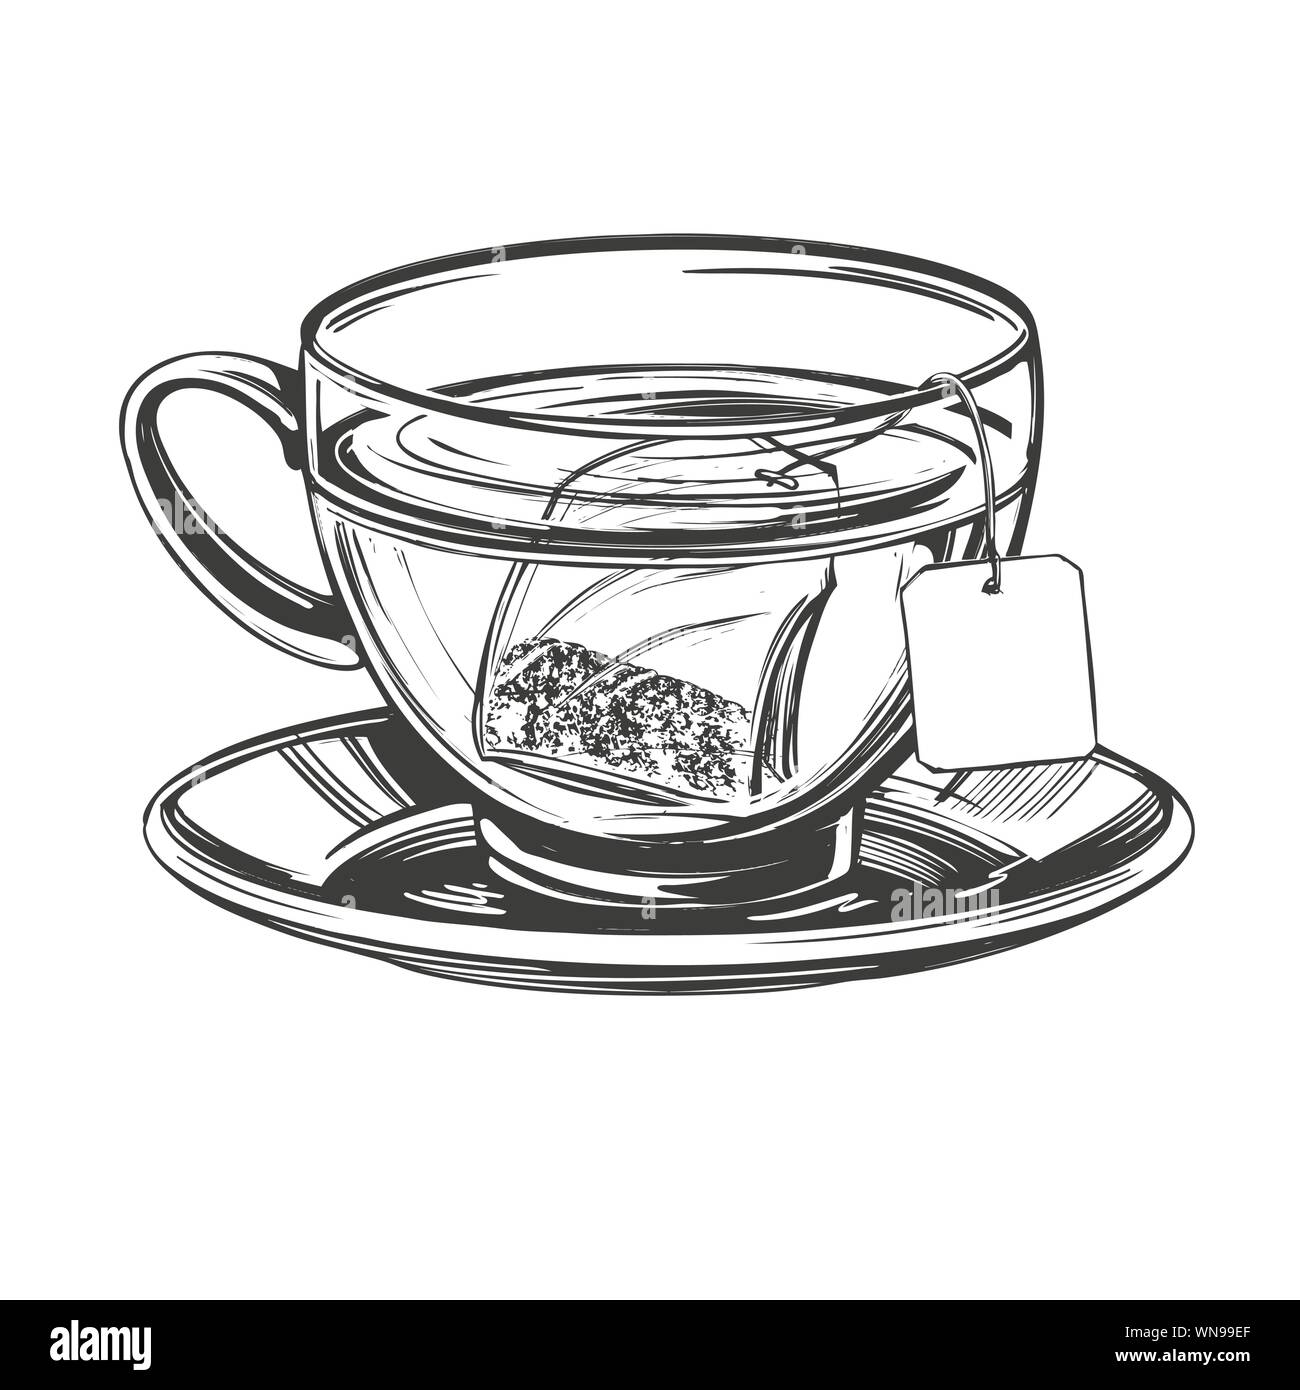 Cup Of Tea With Brewed Tea Bag Isolated On White Background Hand Drawn Vector Illustration Realistic Sketch Stock Vector Image Art Alamy